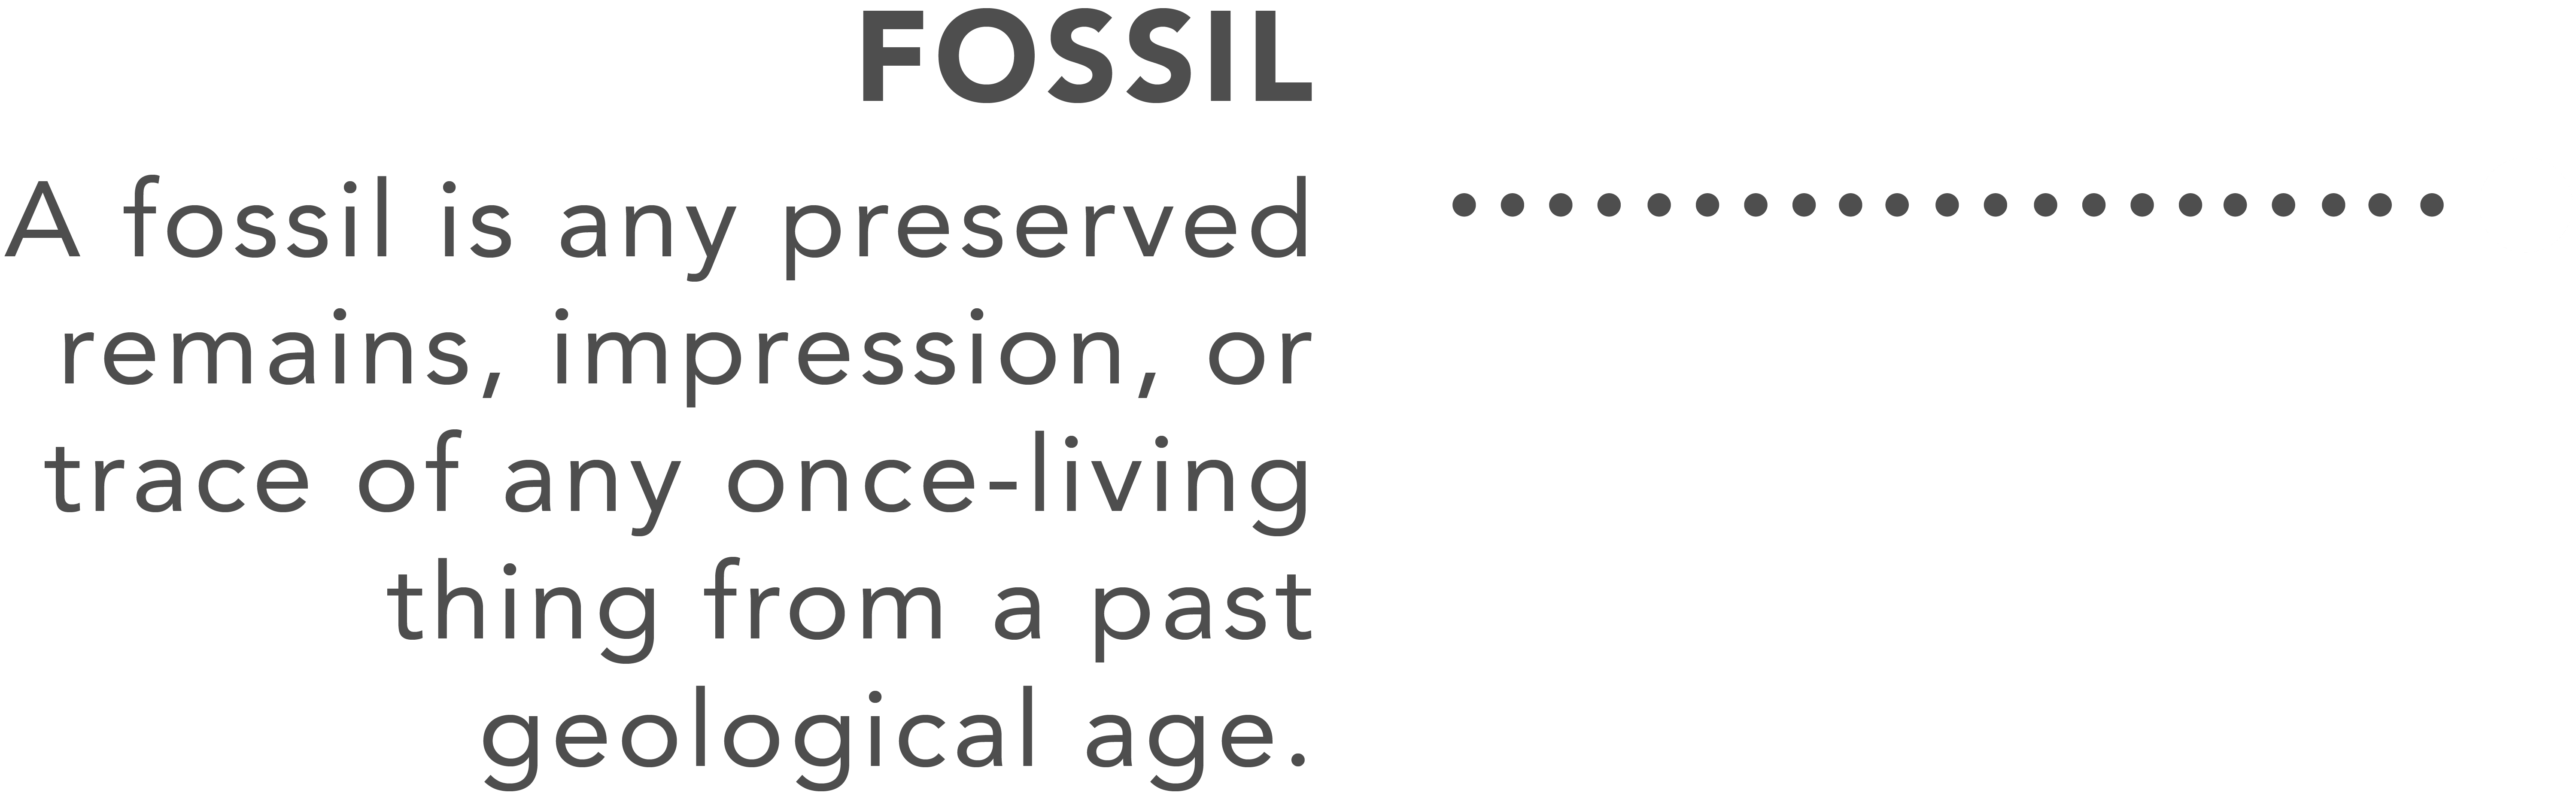 Fossil - Assemblr | Augmented Reality Platform for Everyone - Assemblr is an ecosystem that empowers you to create, share, and discover augmented reality experiences. We make AR easy to use & access, anytime & anywhere.